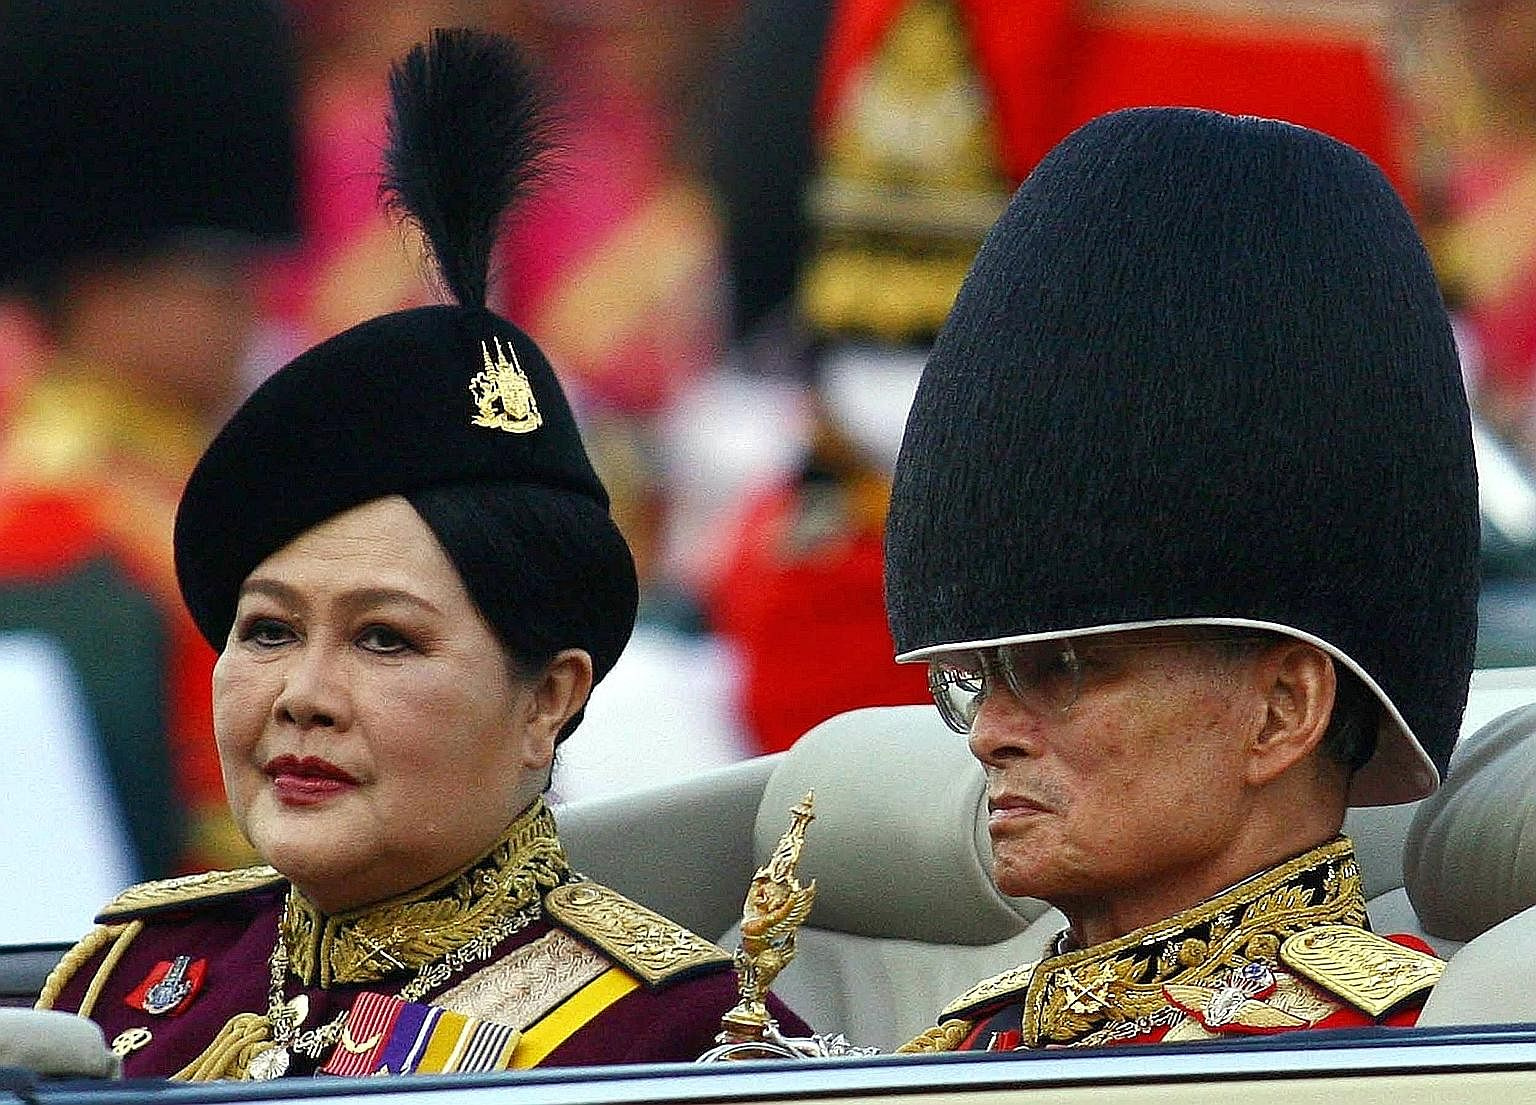 King Bhumibol Adulyadej and Queen Sirikit at celebrations in Bangkok to mark his 79th birthday in 2006. For the majority of Thais who have known only one monarch amid decades of political turbulence, the King's death represents the loss of a moral au